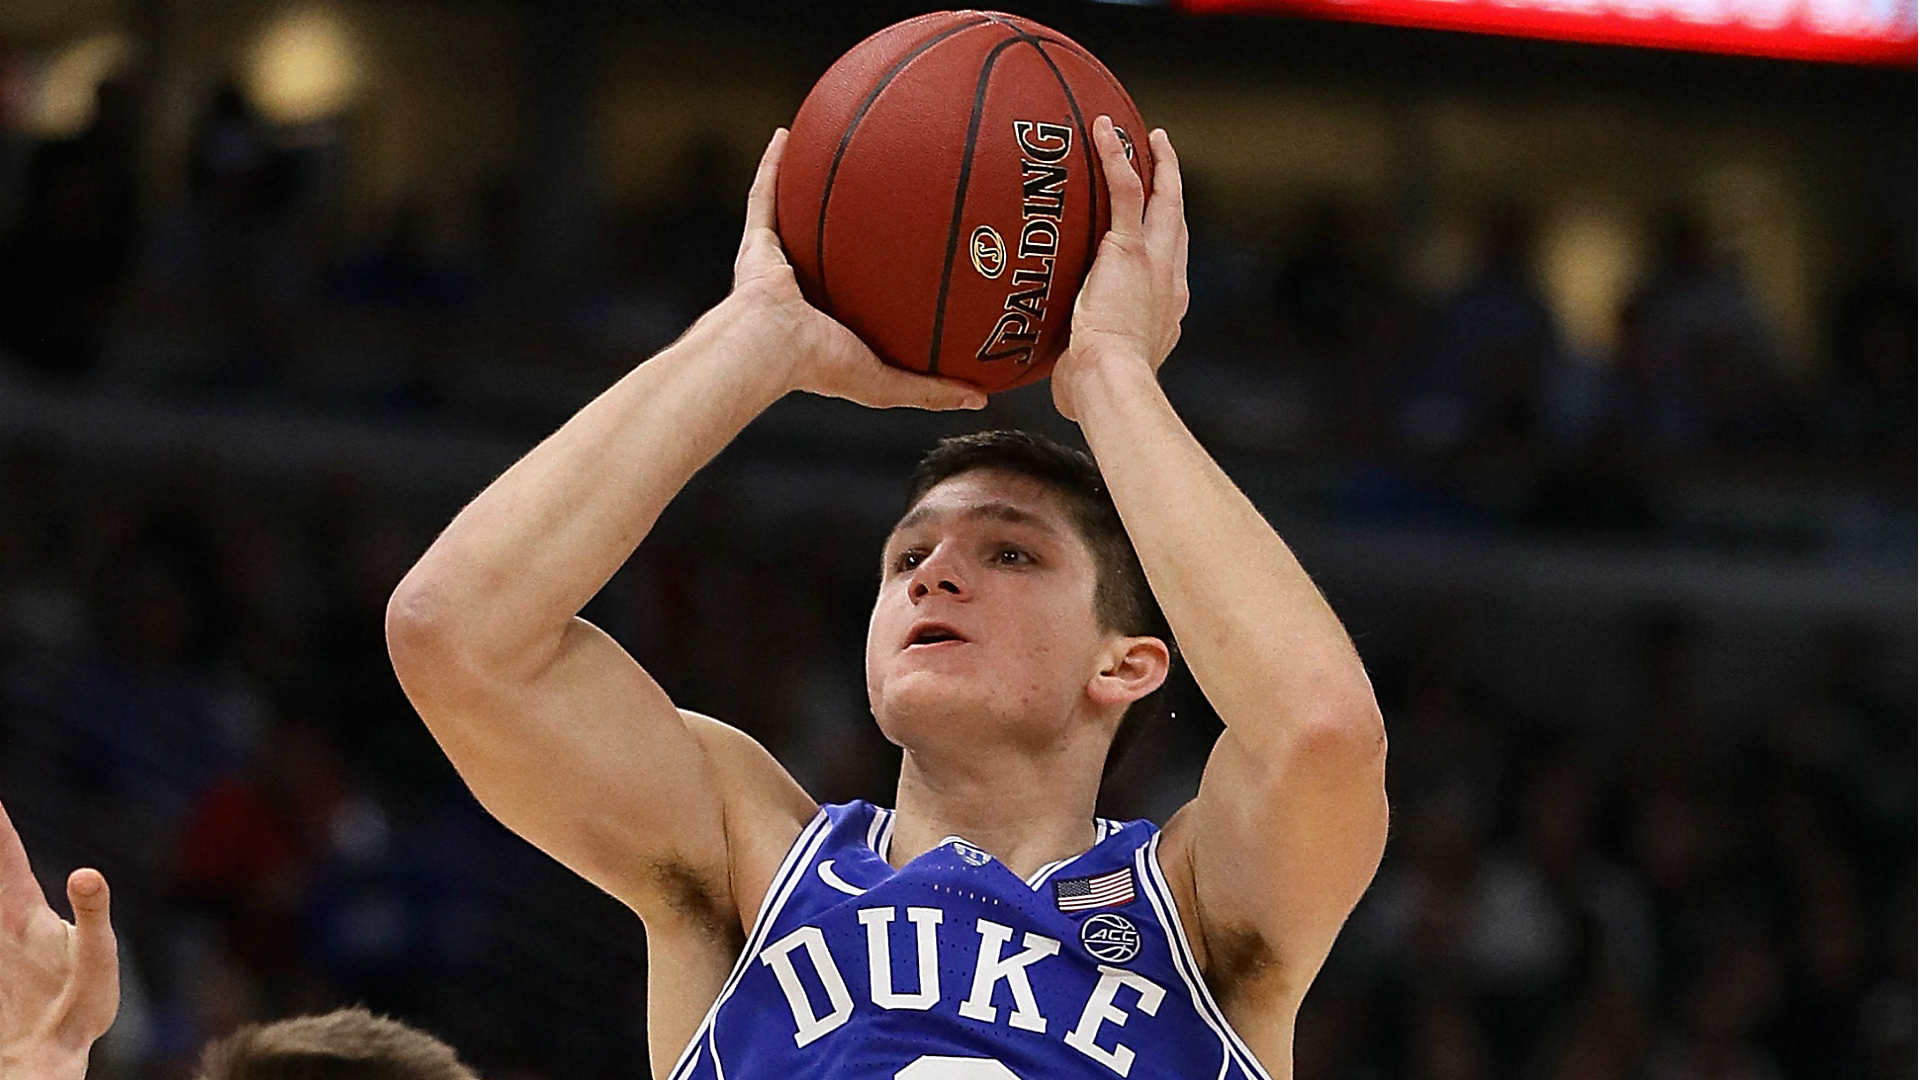 Duke's Grayson Allen shows in Champions Classic he's no longer the Devil you knew | NCAA ...